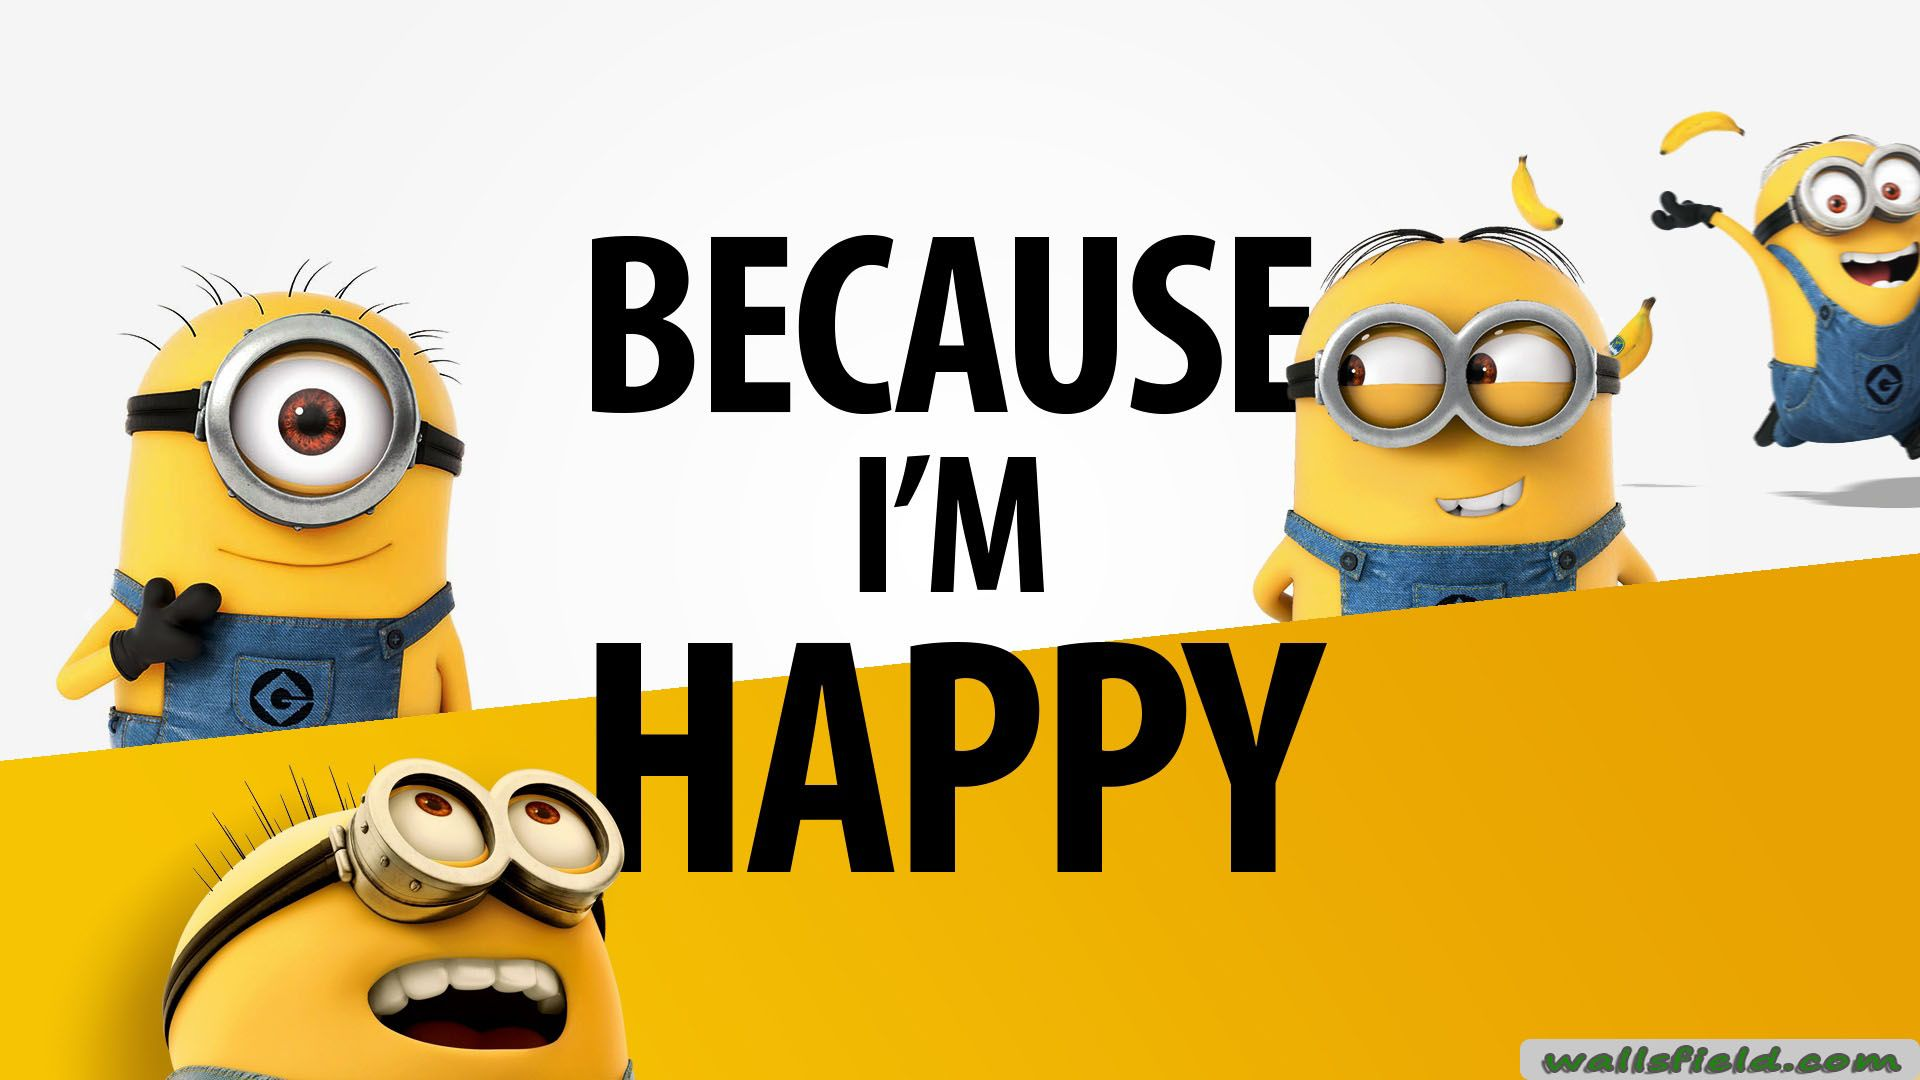 Because Im Happy Minions, Happy minions, Minions love